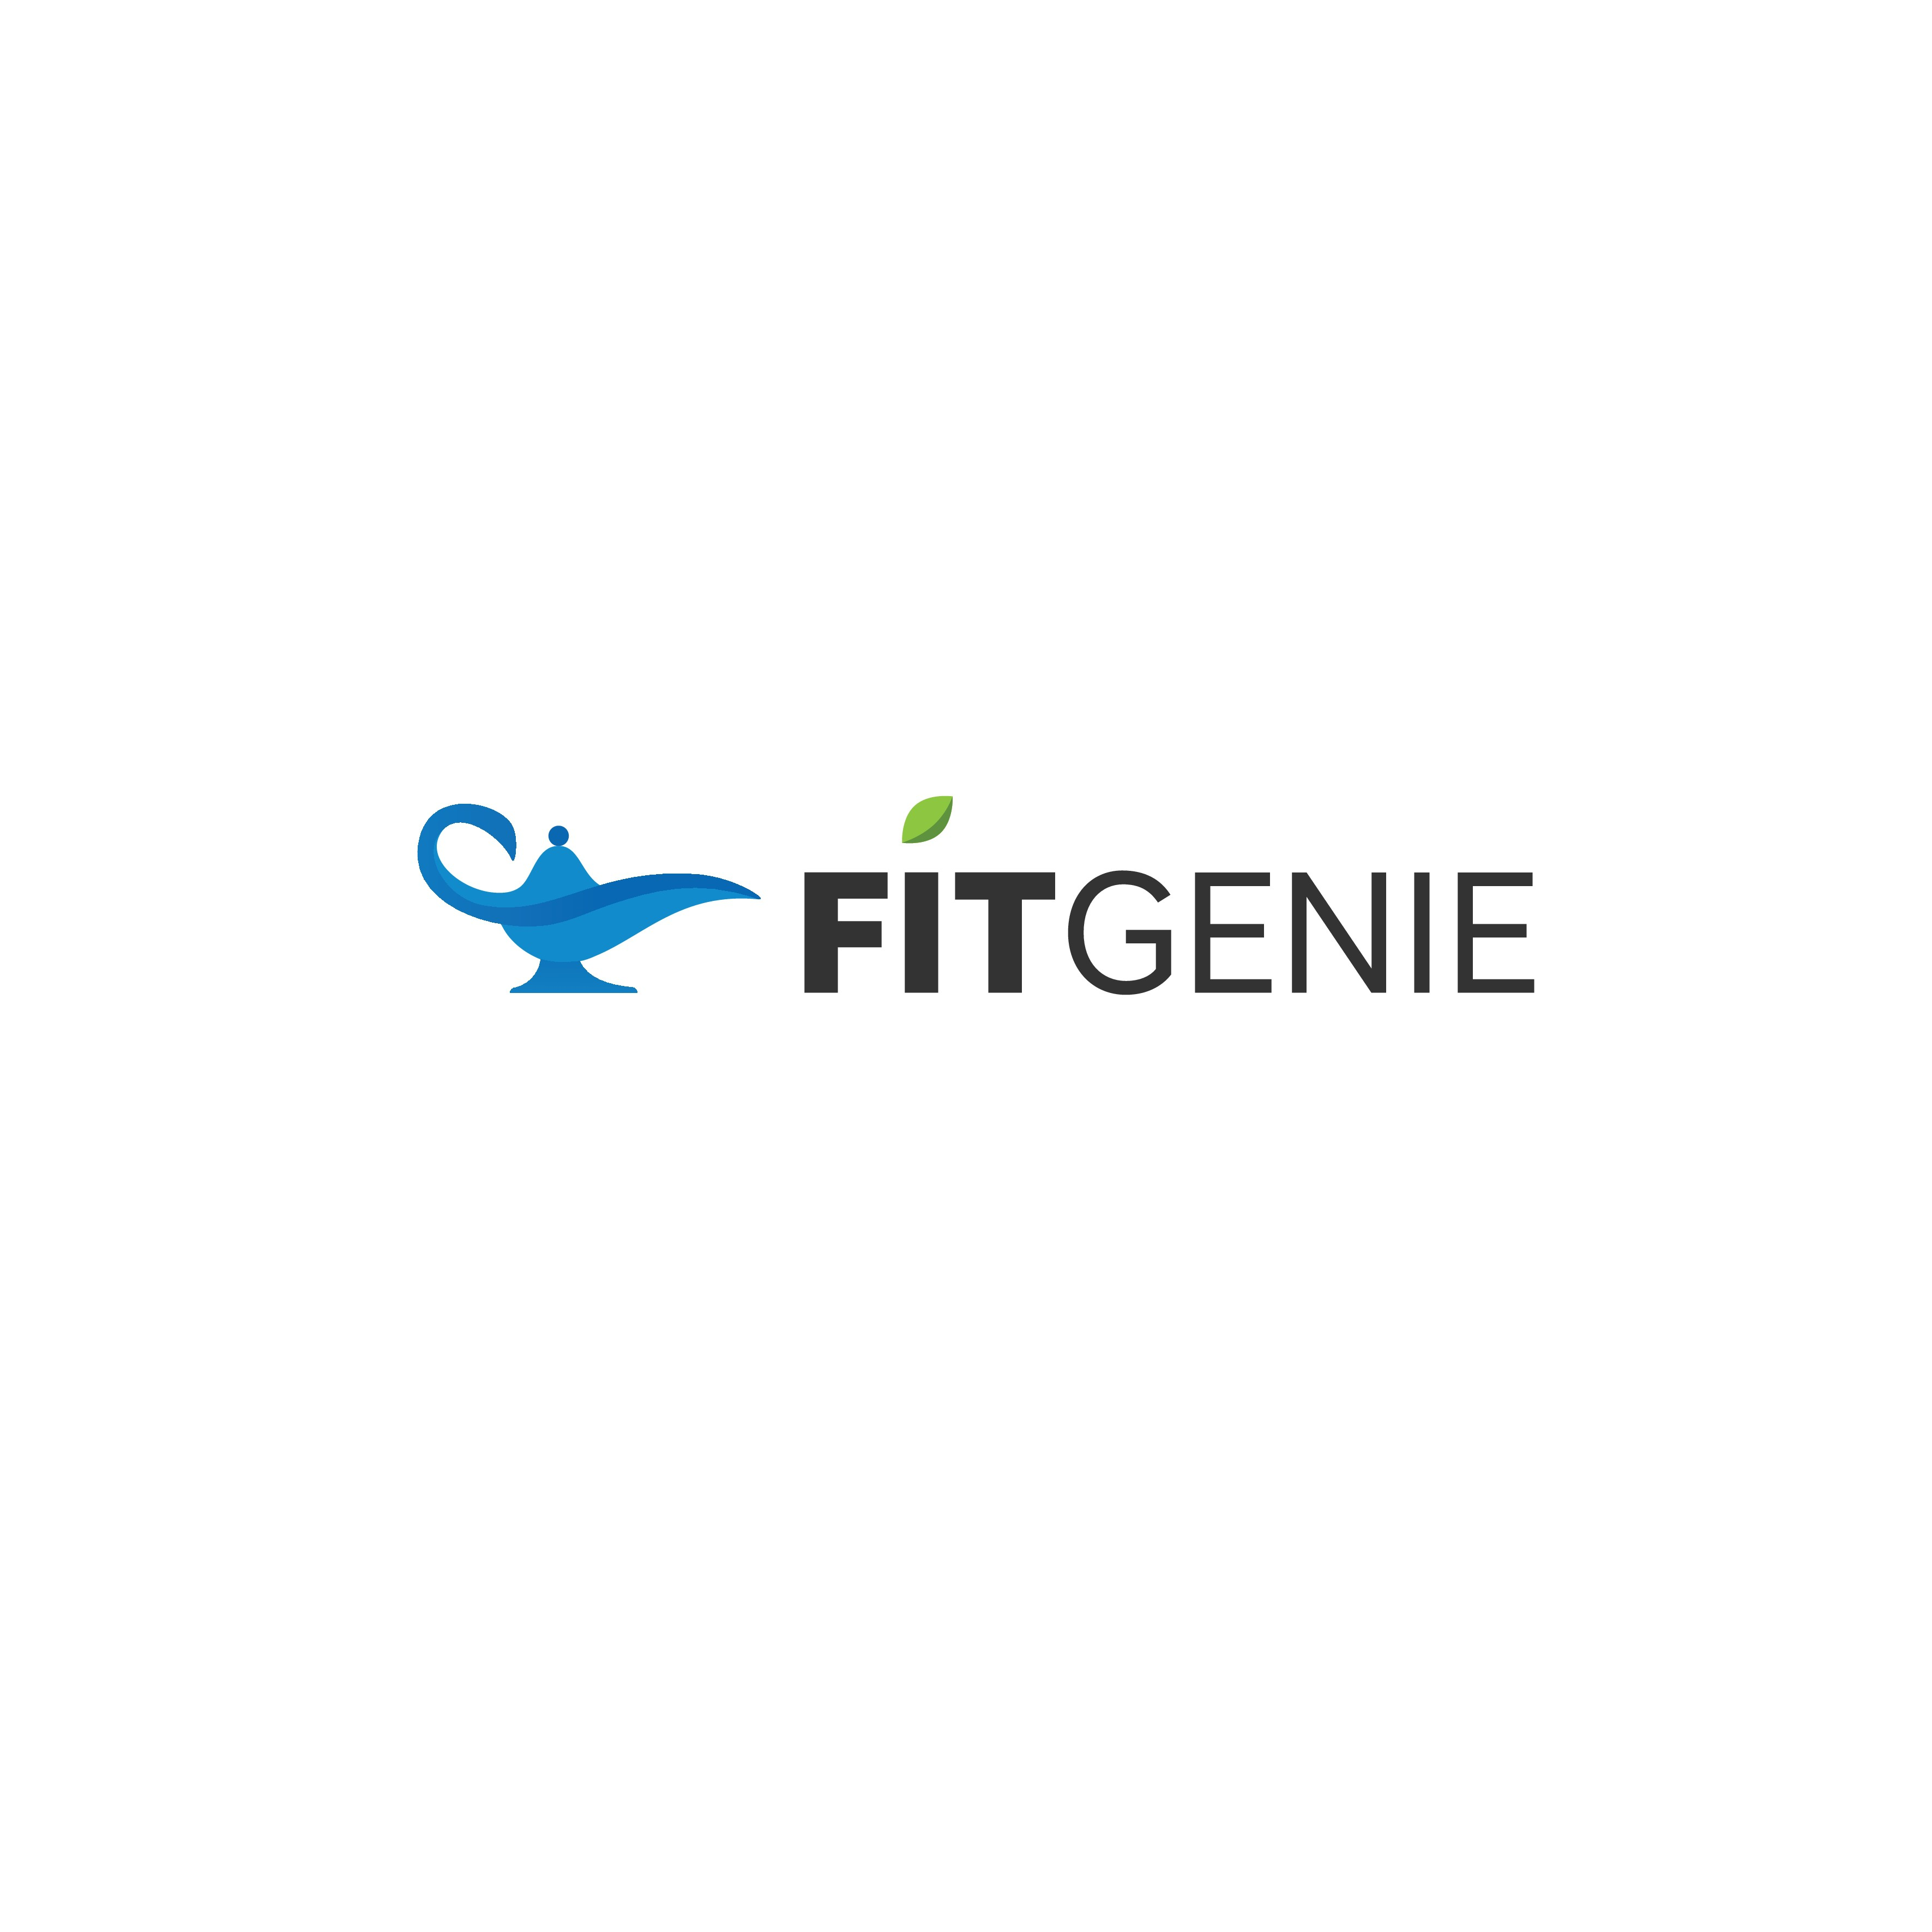 Create a logo and app icon for nutrition/dieting app FitGenie